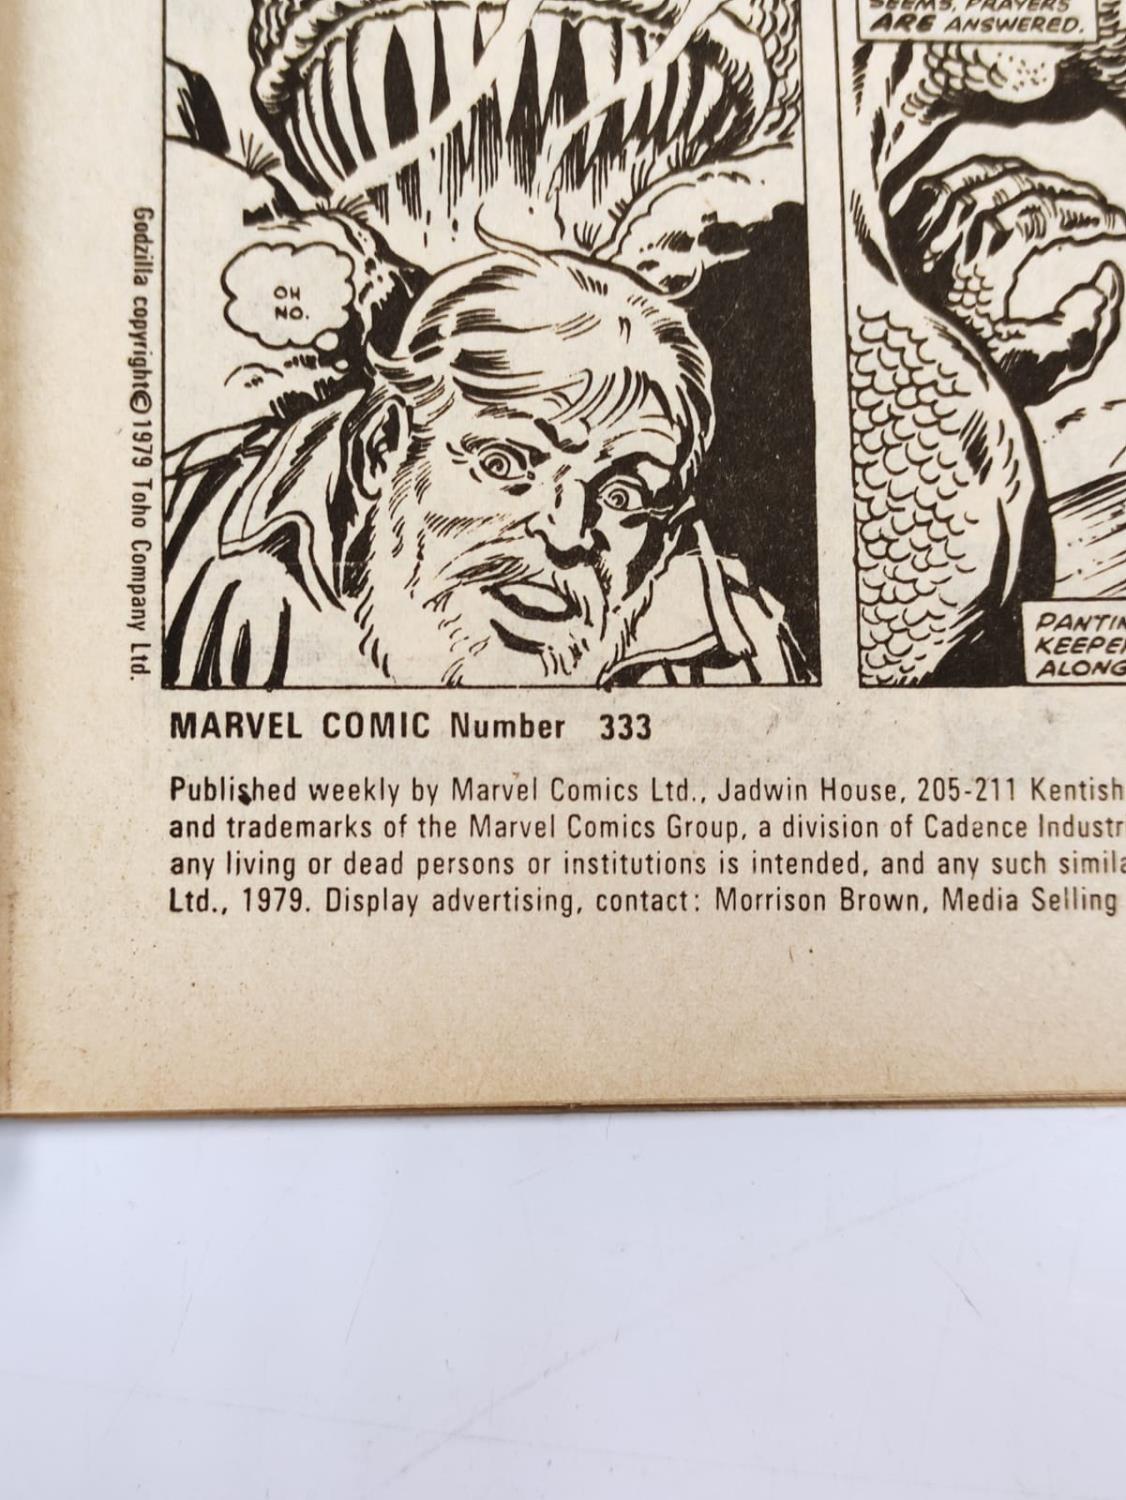 20 editions of mixed Vintage Marvel Comics. - Image 25 of 56